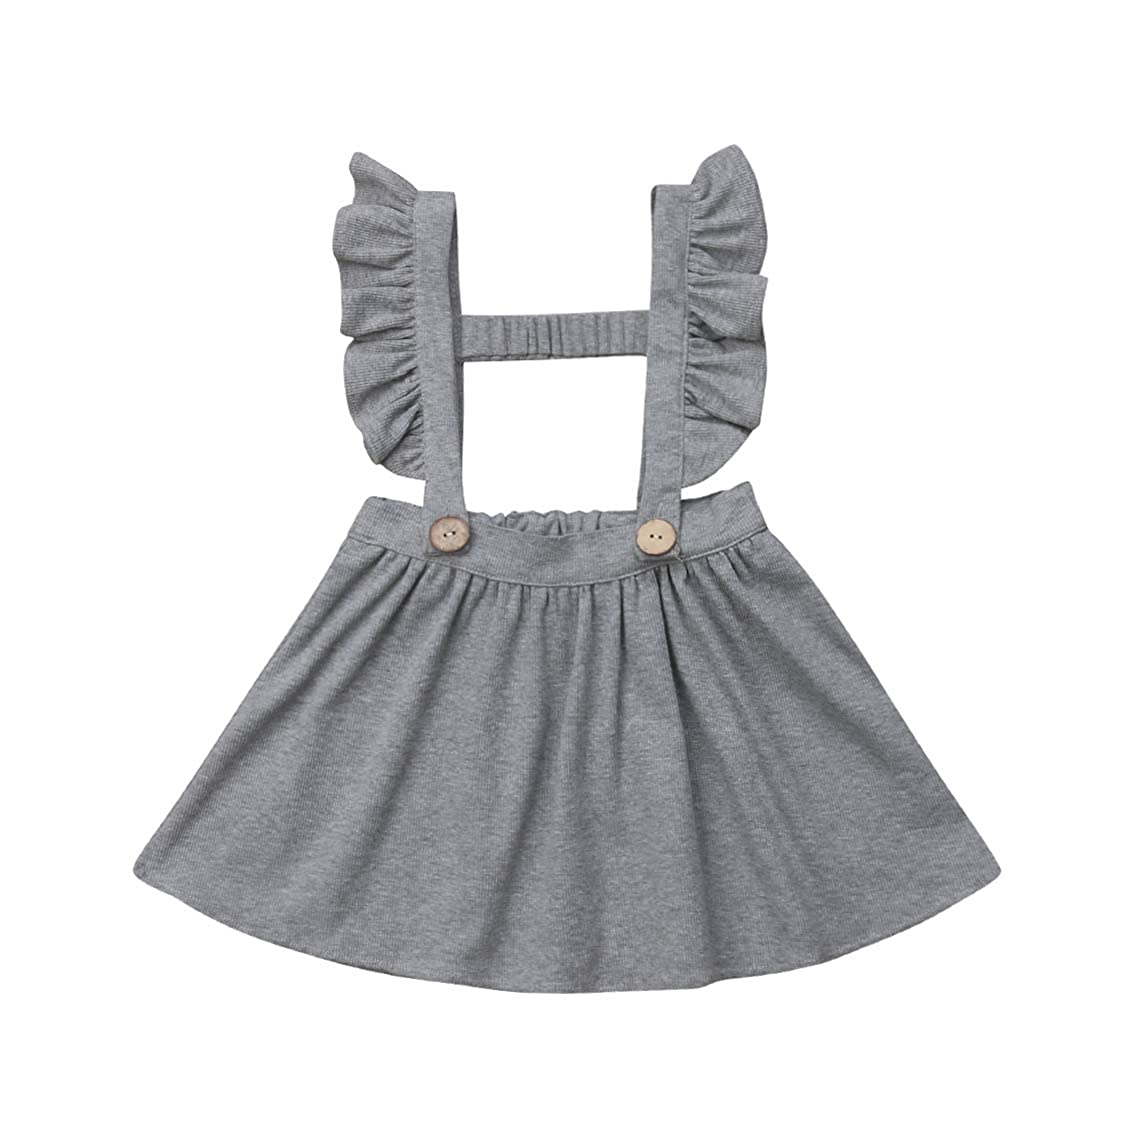 Toddler Kid Baby Girl Ruffle Strap Suspender Skirt Solid Overalls Dress Button A-Line Braces Skirt